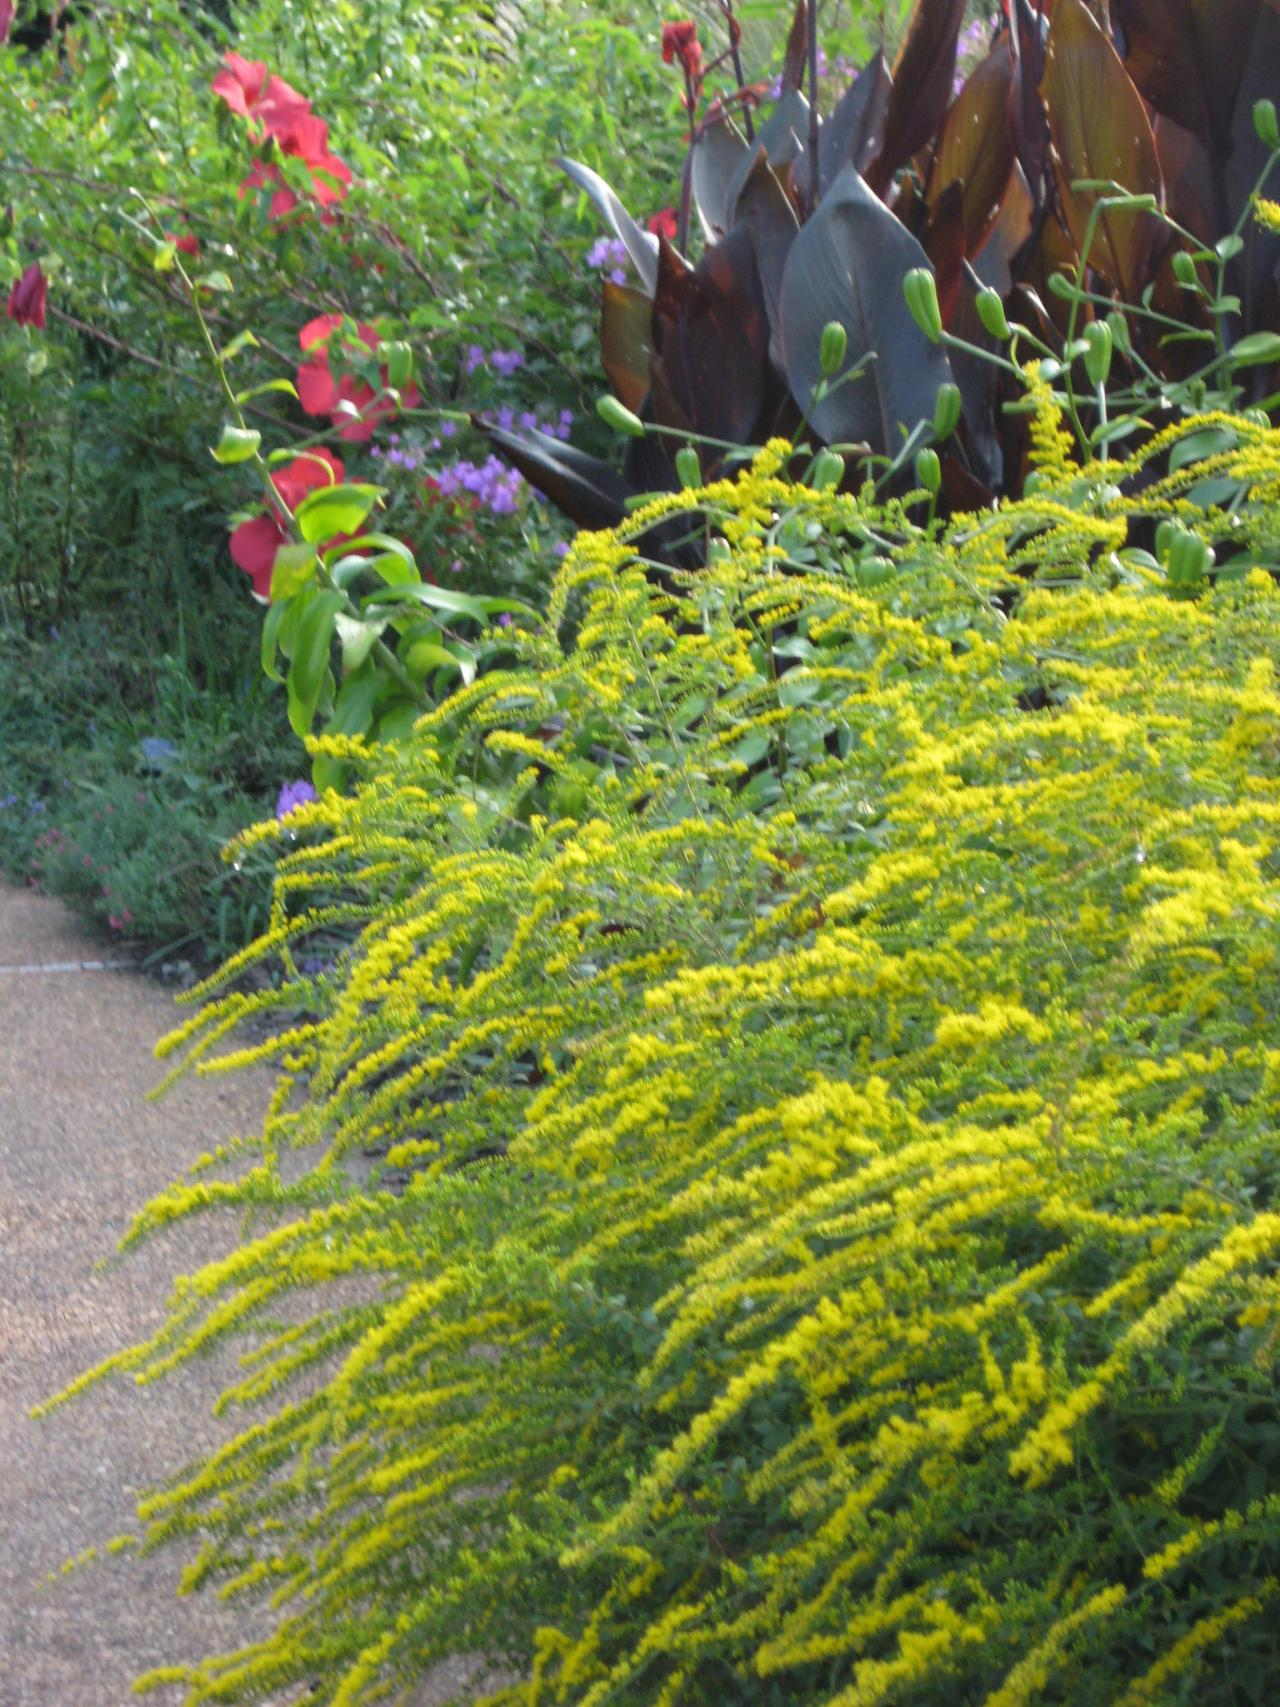 Planting Goldenrod In The Garden: 'Fireworks' Goldenrod Can Add Great Color To Your Garden